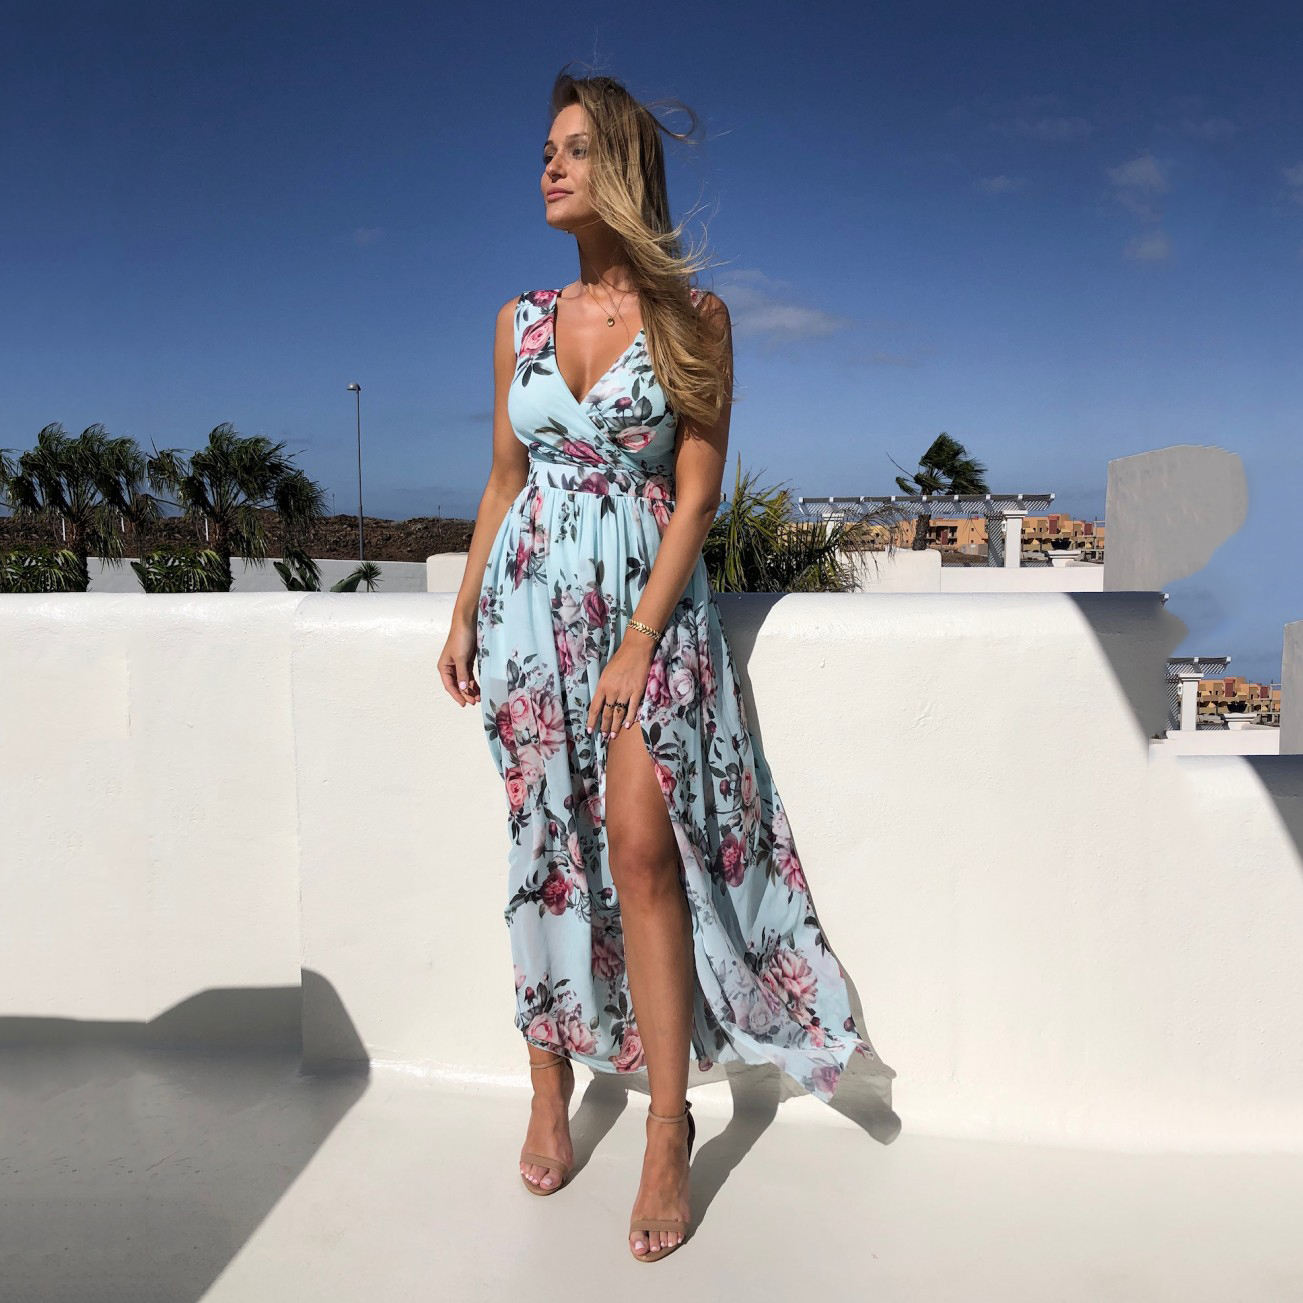 2020 New summer eBay Printed Beach Dress chiffon dress sleeveless Holiday Beach split long skirt Dress